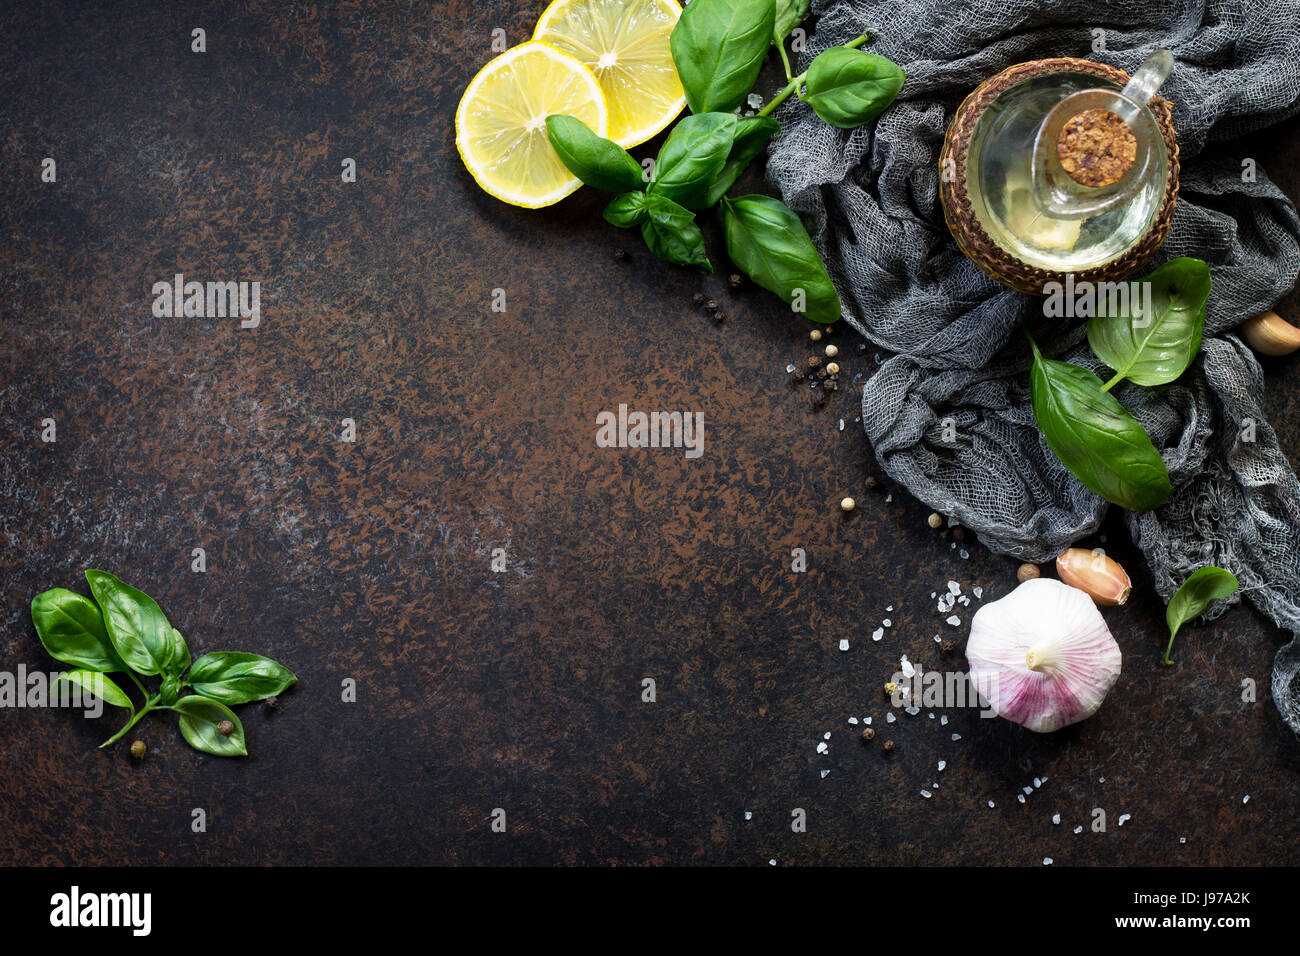 Ingredients for cooking - garlic, lemon, basil, spices and olive oil. Food background on the kitchen table. Top - Stock Image